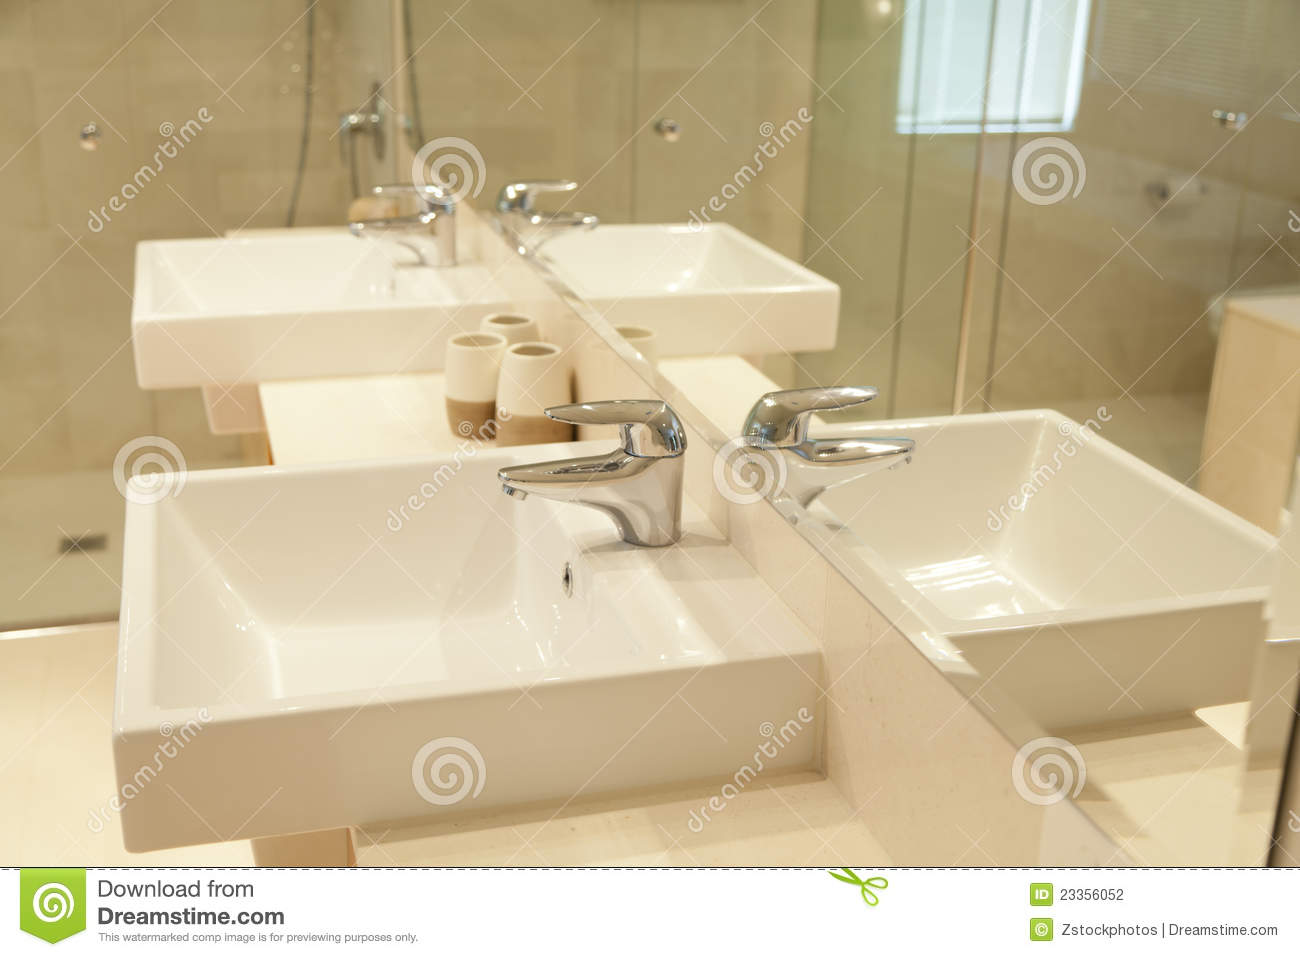 twin bathroom sinks bathroom sinks stock photography image 23356052 14844